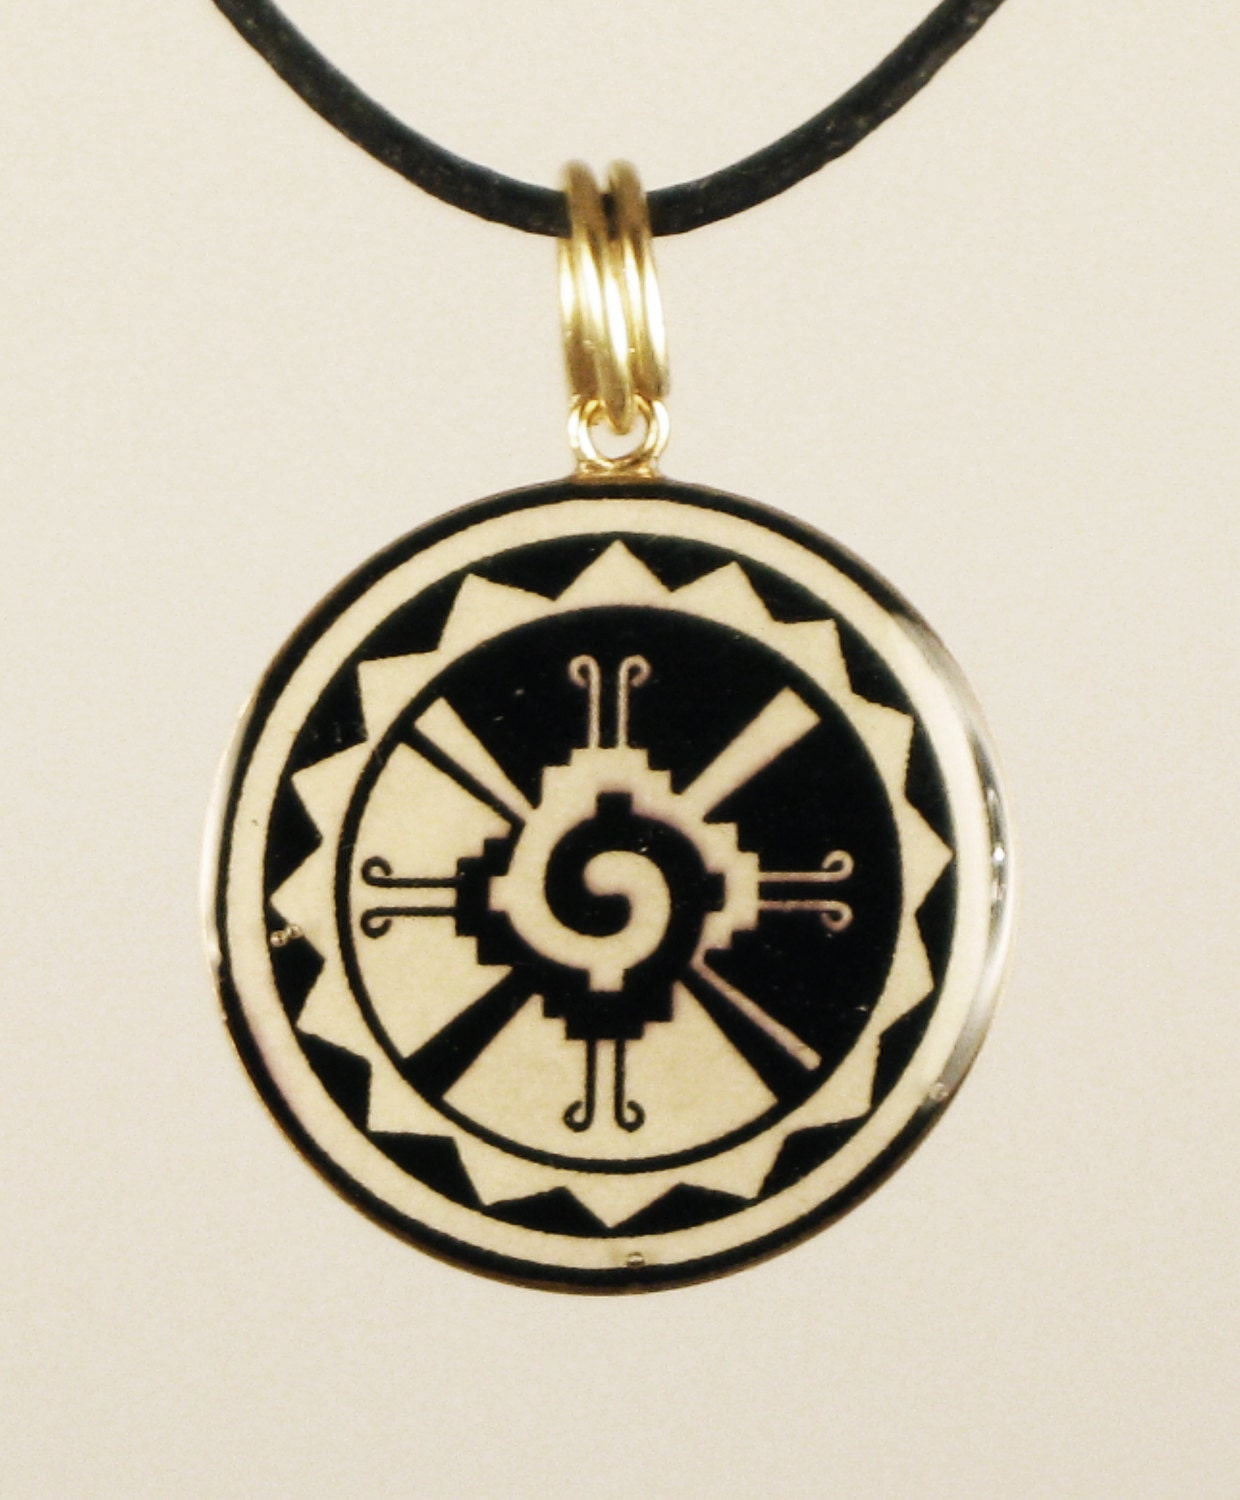 mayan hunab ku deity symbol pendant or necklace by